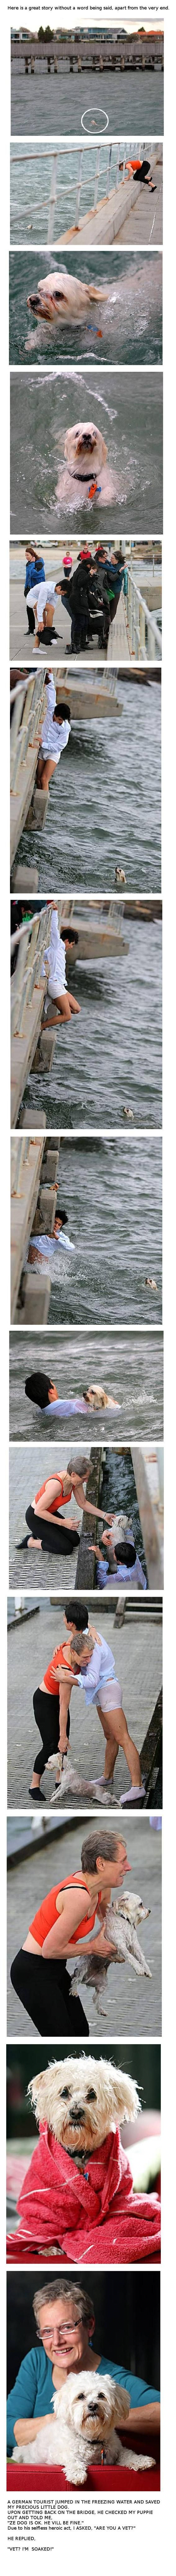 faith in humanity restored, once again